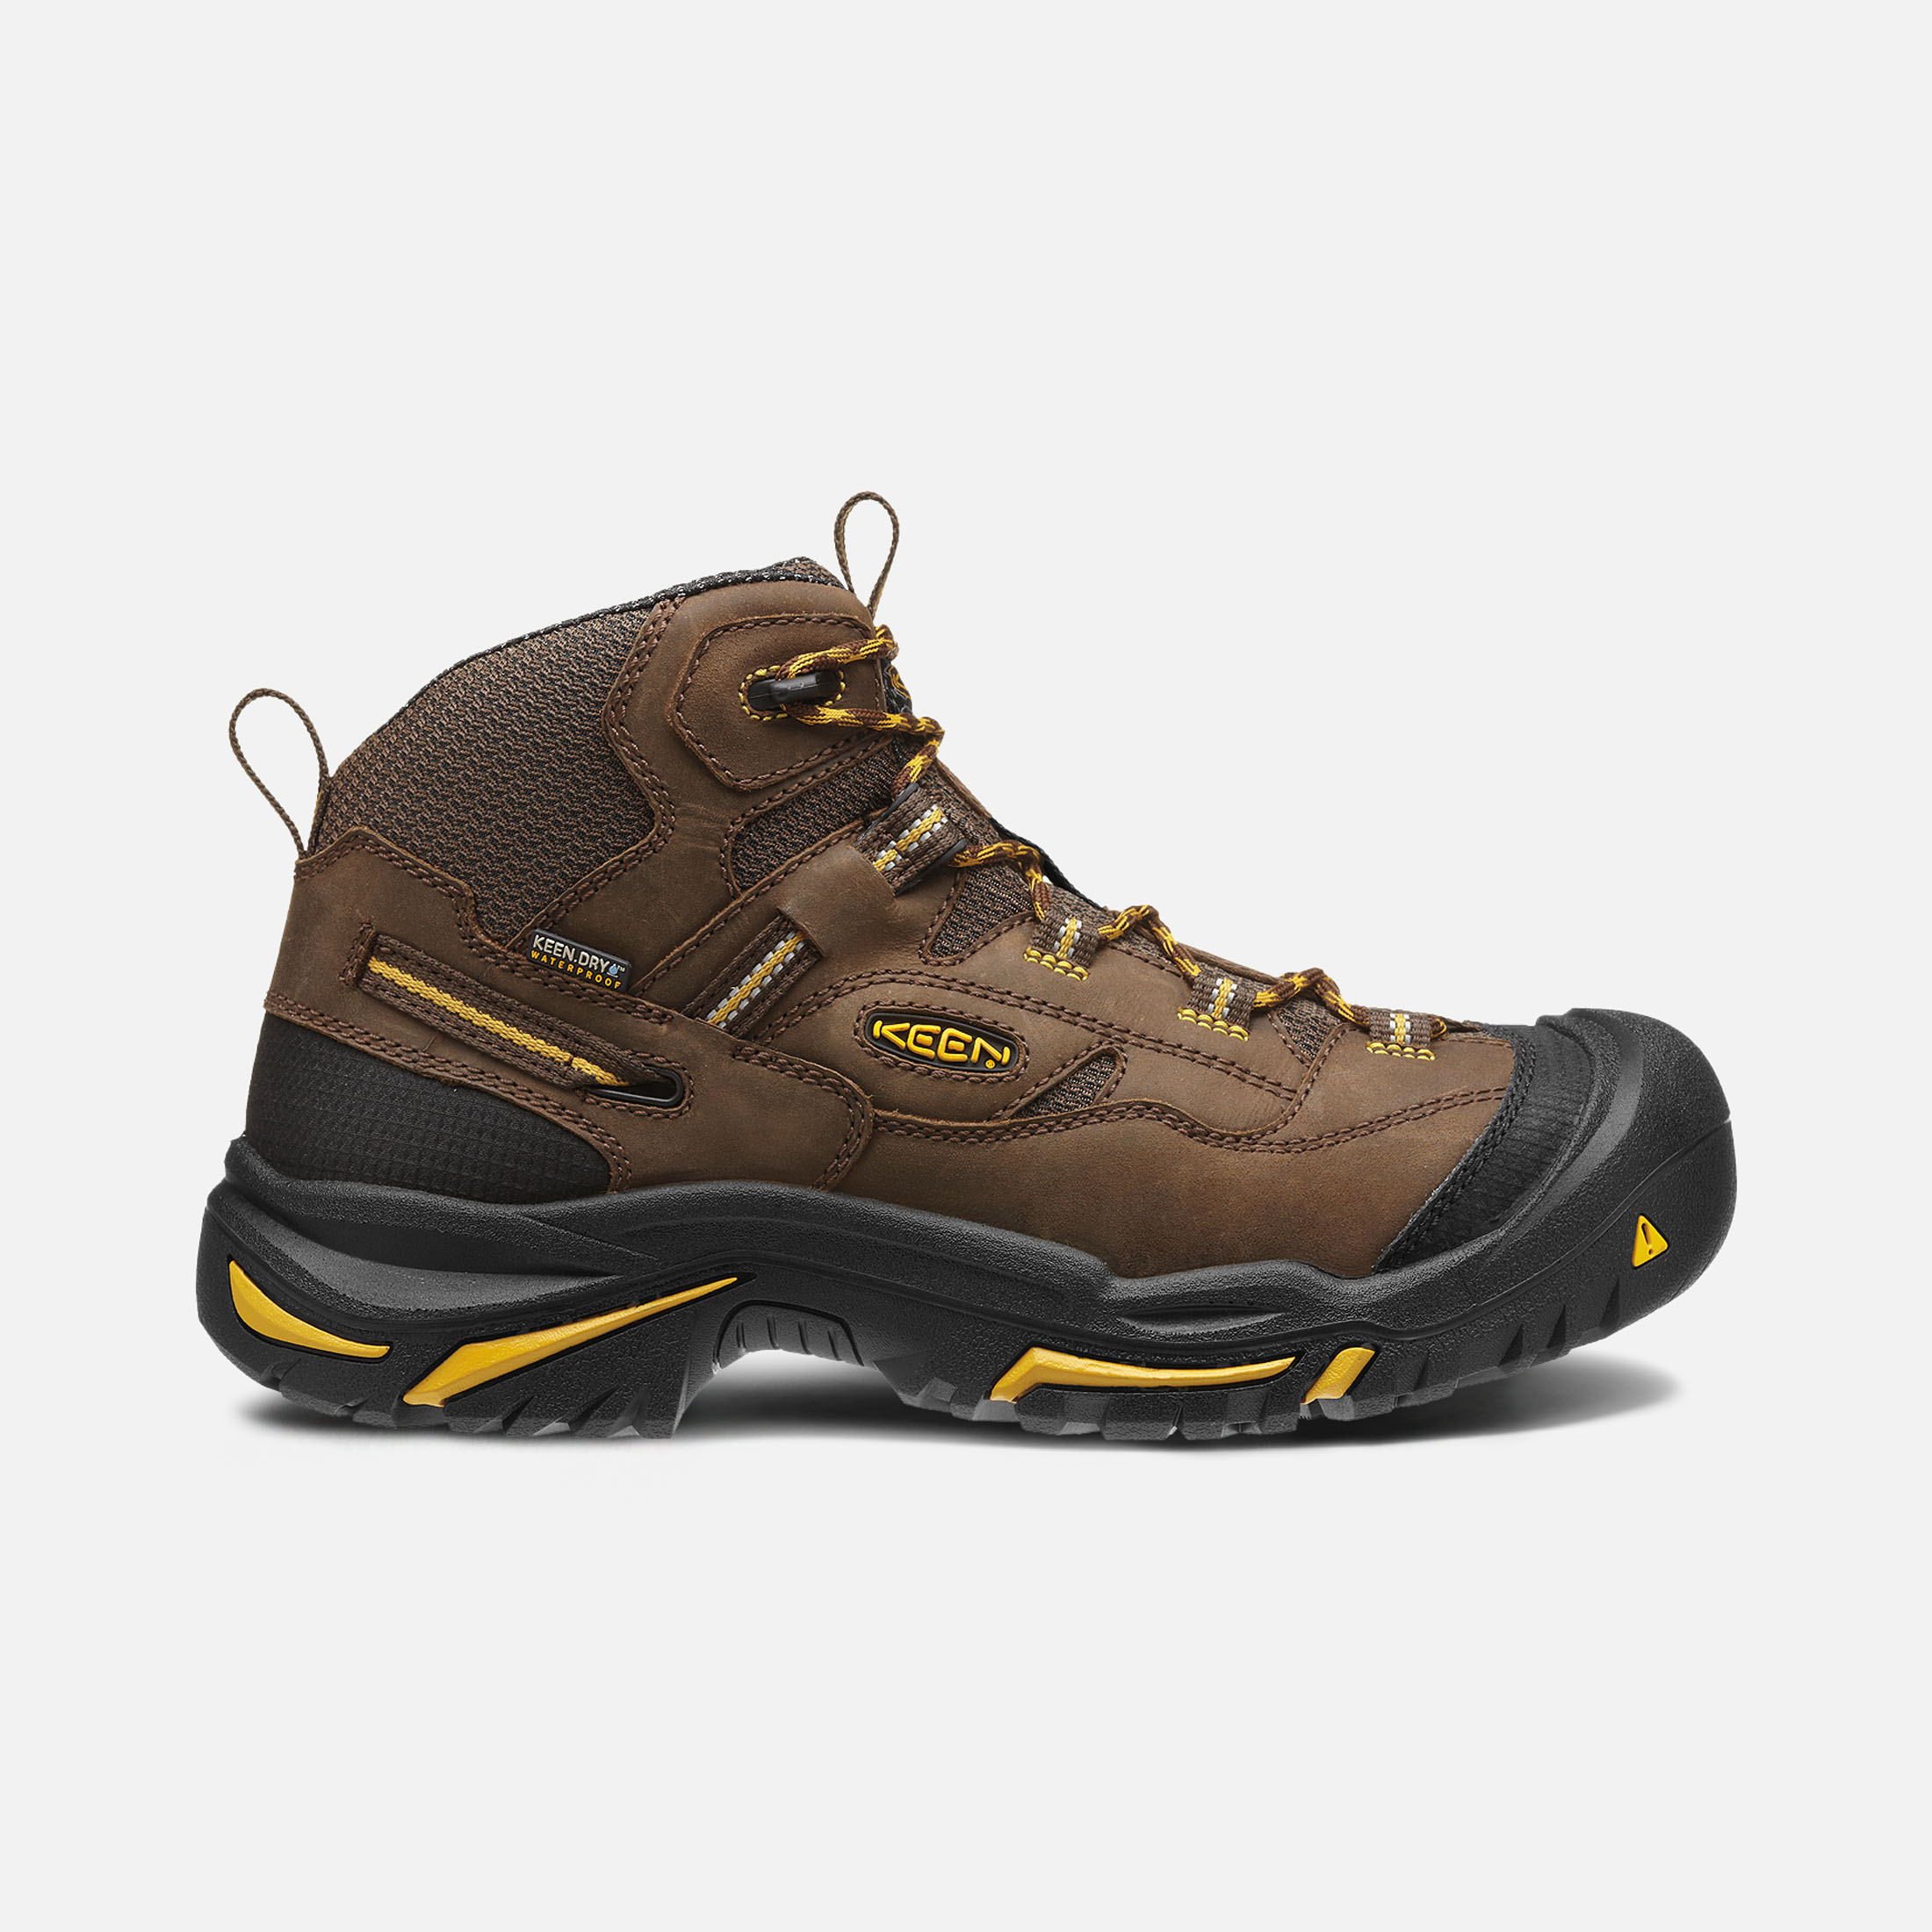 c967b511d93 Men's Braddock Mid Waterproof Work Boots - Steel Toe Boots | KEEN ...